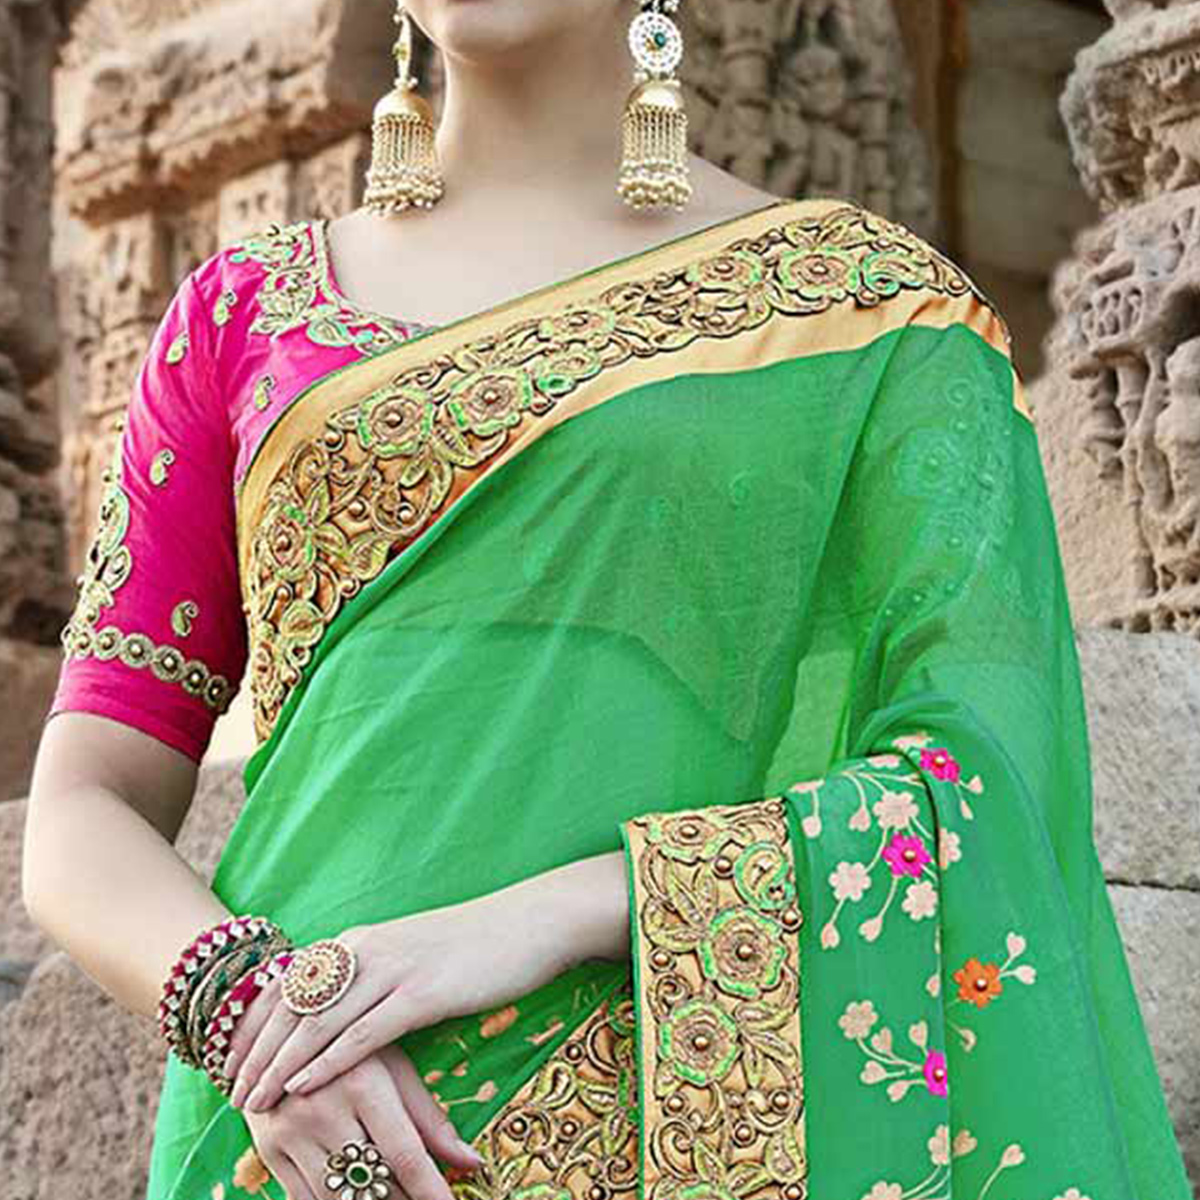 Ravishing Green Colored Heavy Floral Embroidered Work Party Wear Silk Saree